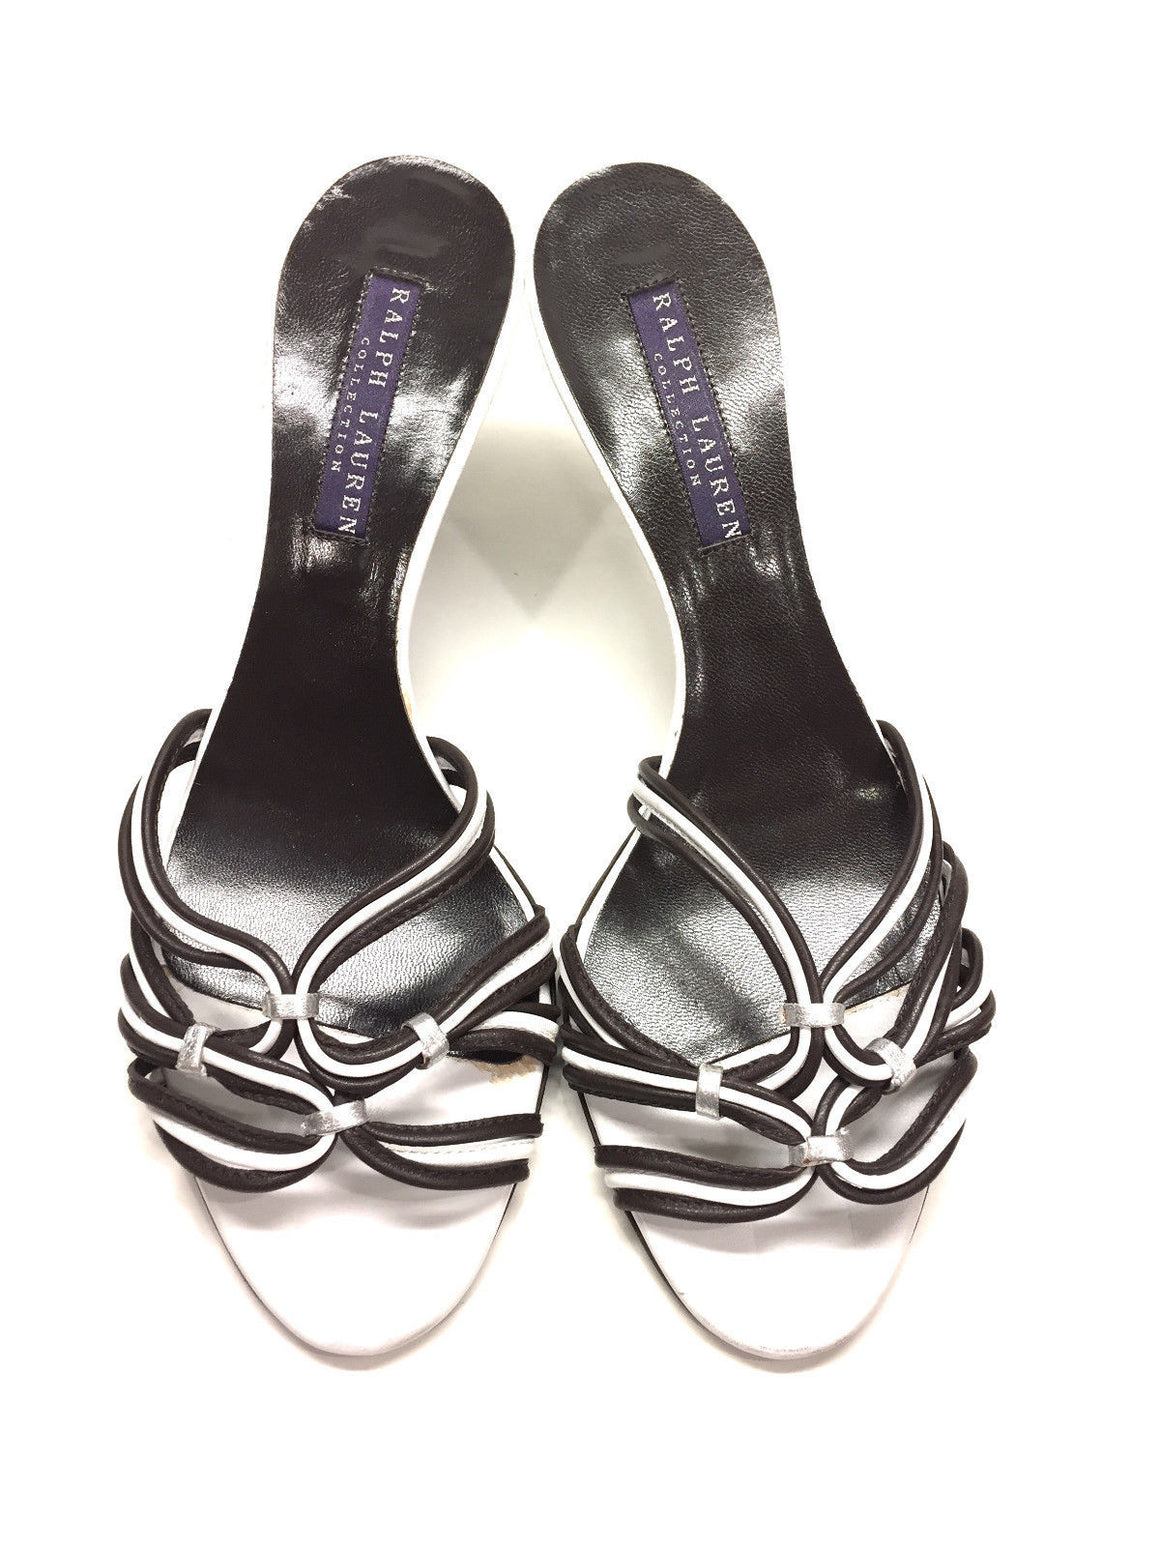 bisbiz.com RALPH LAUREN Purple Label Brown/White Leather Strappy Heel Sandals Mules Size: 6.5B - Bis Luxury Resale